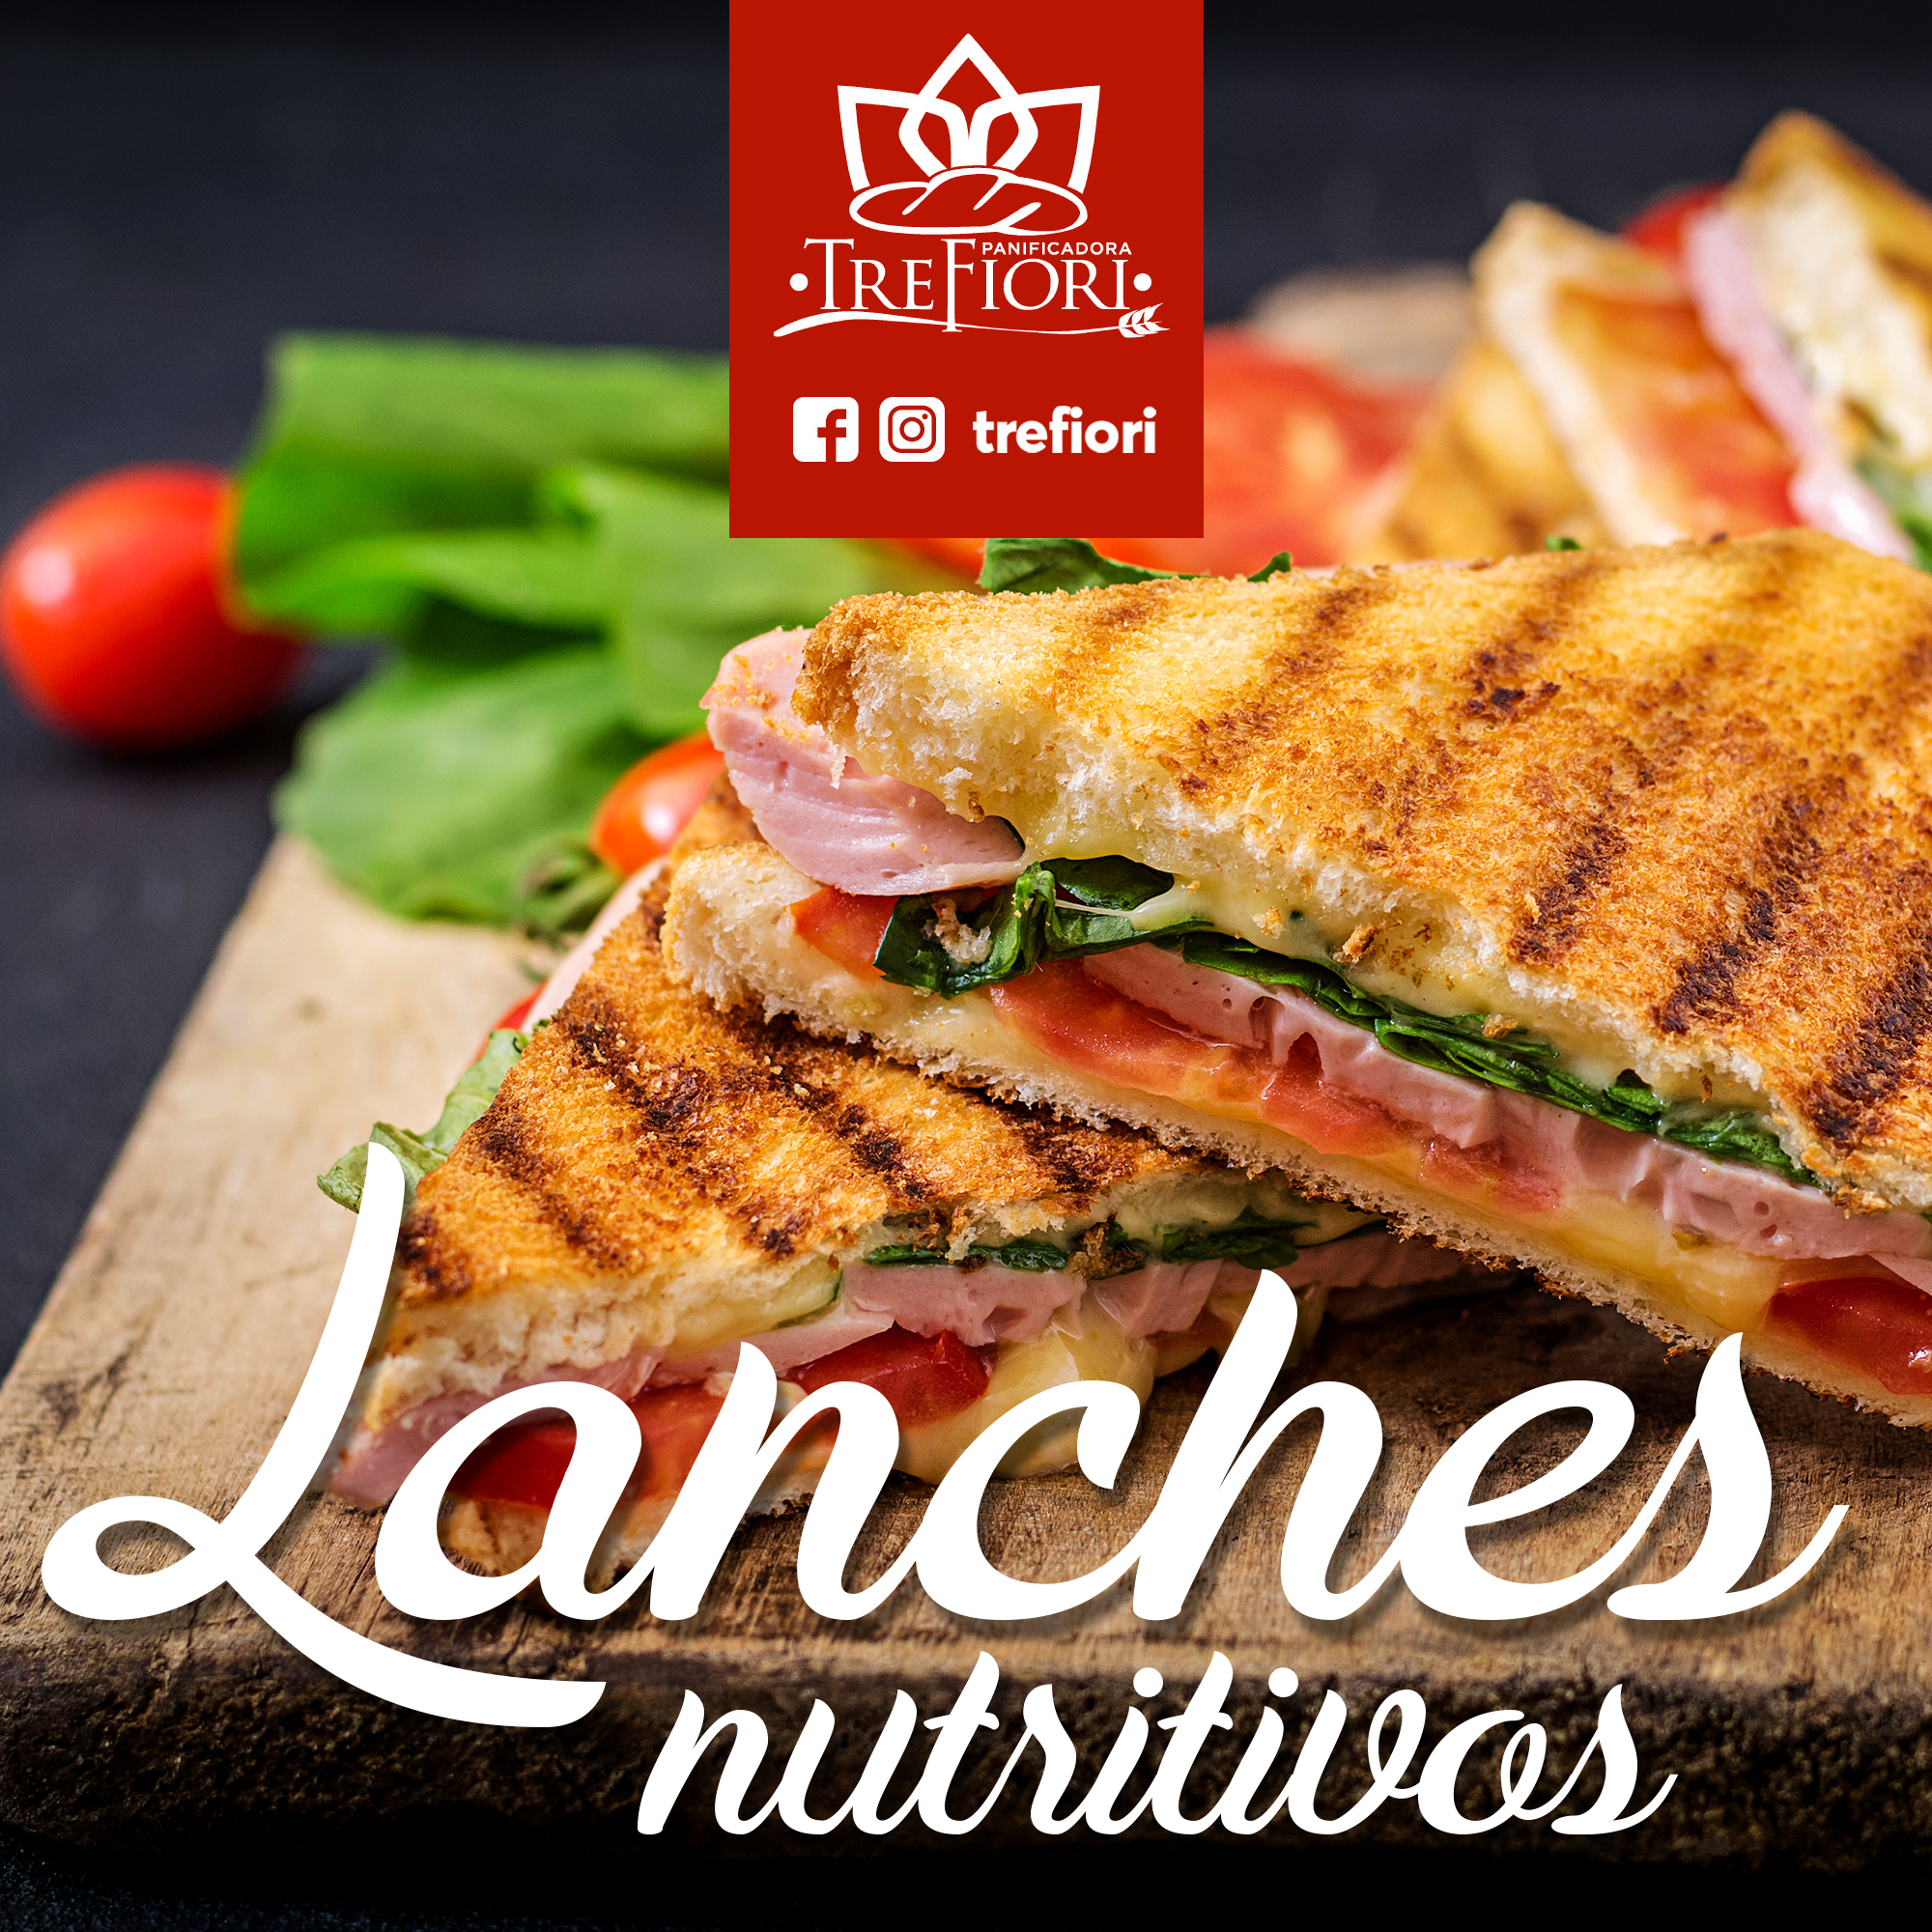 Post_lanches_01